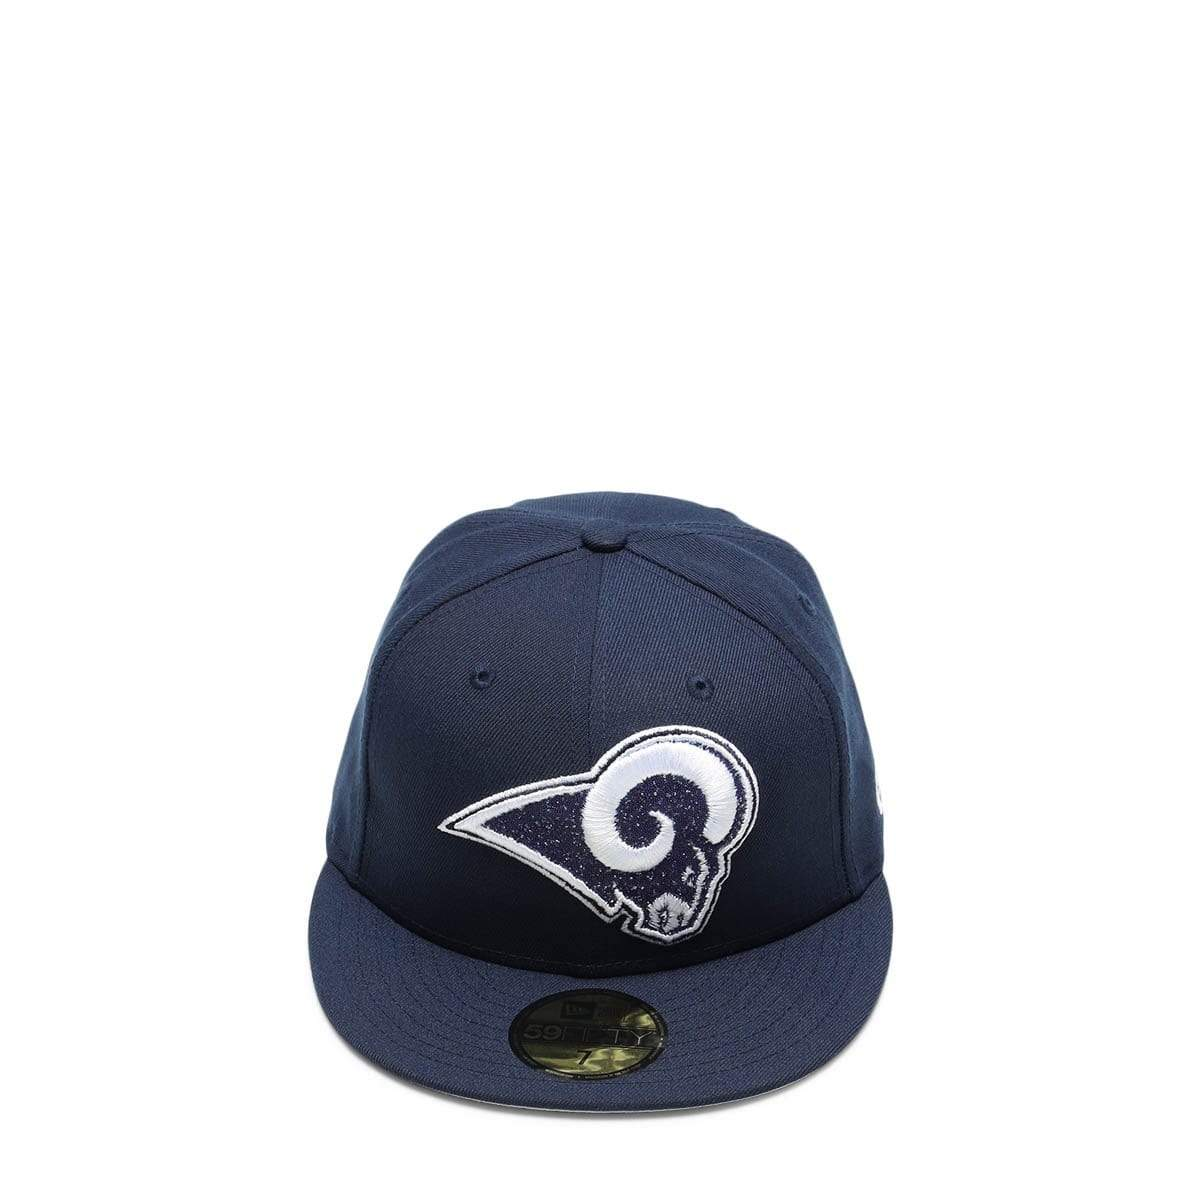 New Era Headwear RAMS SWAROVSKI 59FIFTY